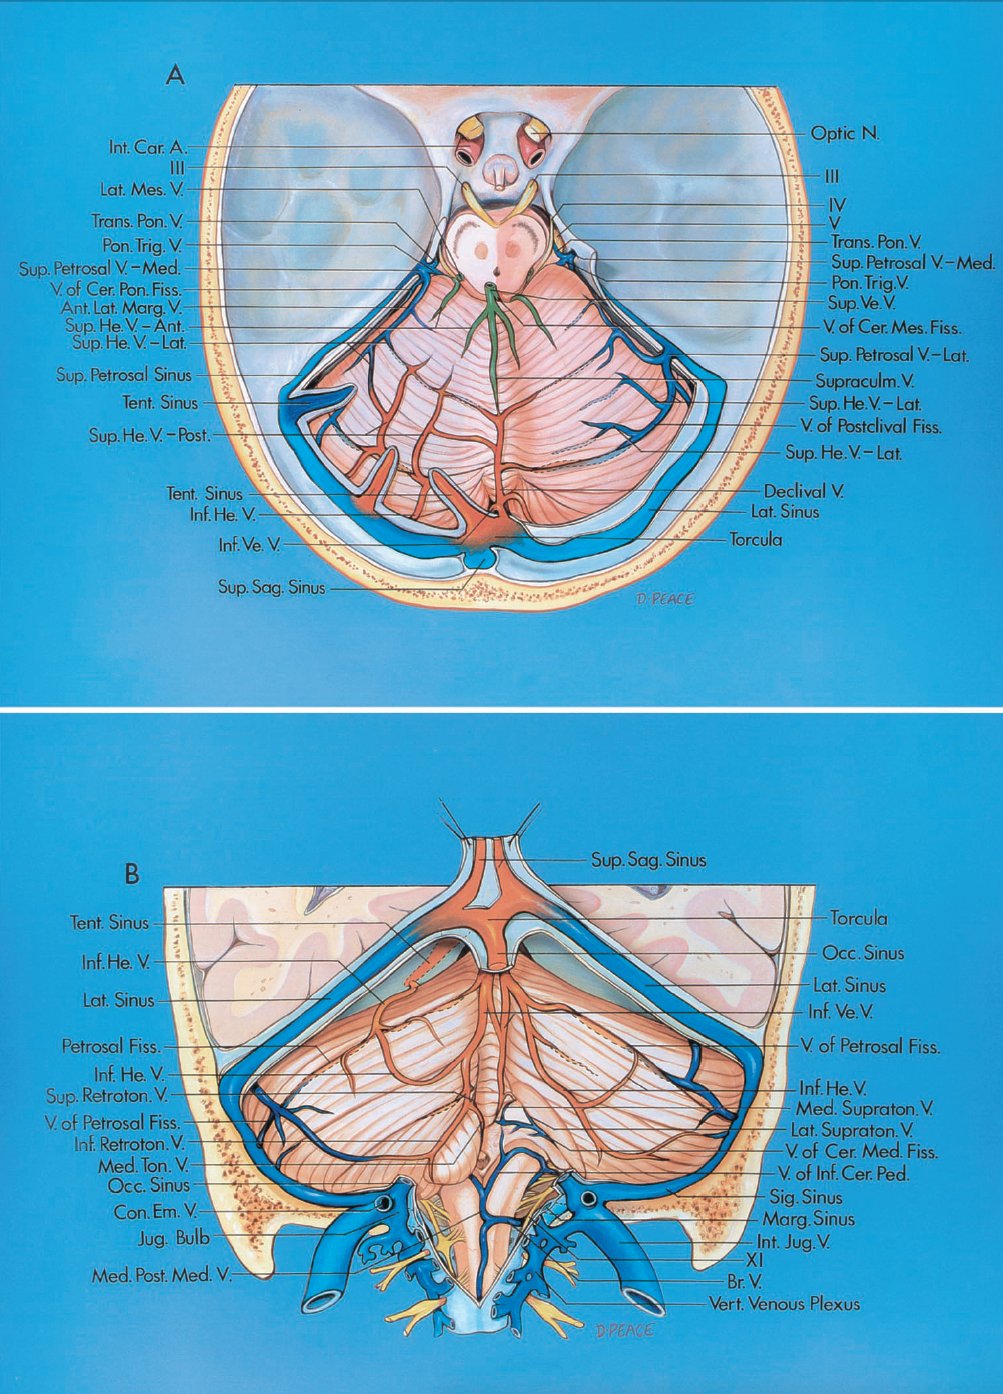 FIGURE 3.3. A and B. Veins of the posterior fossa. The veins in the posterior are divided into three groups: a galenic group (green) that drains into the vein of Galen; a petrosal group (blue) that drains into the petrosal sinuses; and a tentorial group (brown) that drains into the sinuses near the torcula. A, tentorial surface, superior view. The tentorium has been removed except in the area of the tentorial sinuses. B, suboccipital surface, posterior view. The right tonsil and the medial part of the biventral lobule have been removed to expose the structures on the ventral wall of the cerebellomedullary fissure. A., artery; Ant., anterior; Bas., basilar; Br., bridging; Car., carotid; Cav., cavernous; Cer., cerebellar, cerebello, cerebral; Cer. Mes., cerebellomesencephalic; Ch., choroidal; Com., communicating; Con., condylar; Em., emissary; Fiss., fissure; He., hemispheric; Inf., inferior; Int., internal; Jug., jugular; Lat., lateral; Lig., ligament; Marg., marginal; Med., medial, medullary; Mes., mesencephalic; Mid., mid, middle; N., nerve; Occ., occipital; Olf., olfactory; Ped., peduncle; Pon., pontine; Post., posterior; Retroton., retrotonsillar; Sag., sagittal; Sig., sigmoid; Str., straight; Sulc., sulcus; Sup., superior; Supraculm., supraculminate; Supraton., supratonsillar; Tent., tentorial; Ton., tonsillar; Trans., transverse; Trig., trigeminal; V., vein; Ve., vermian; Vel., velum; Vert., vertebral.